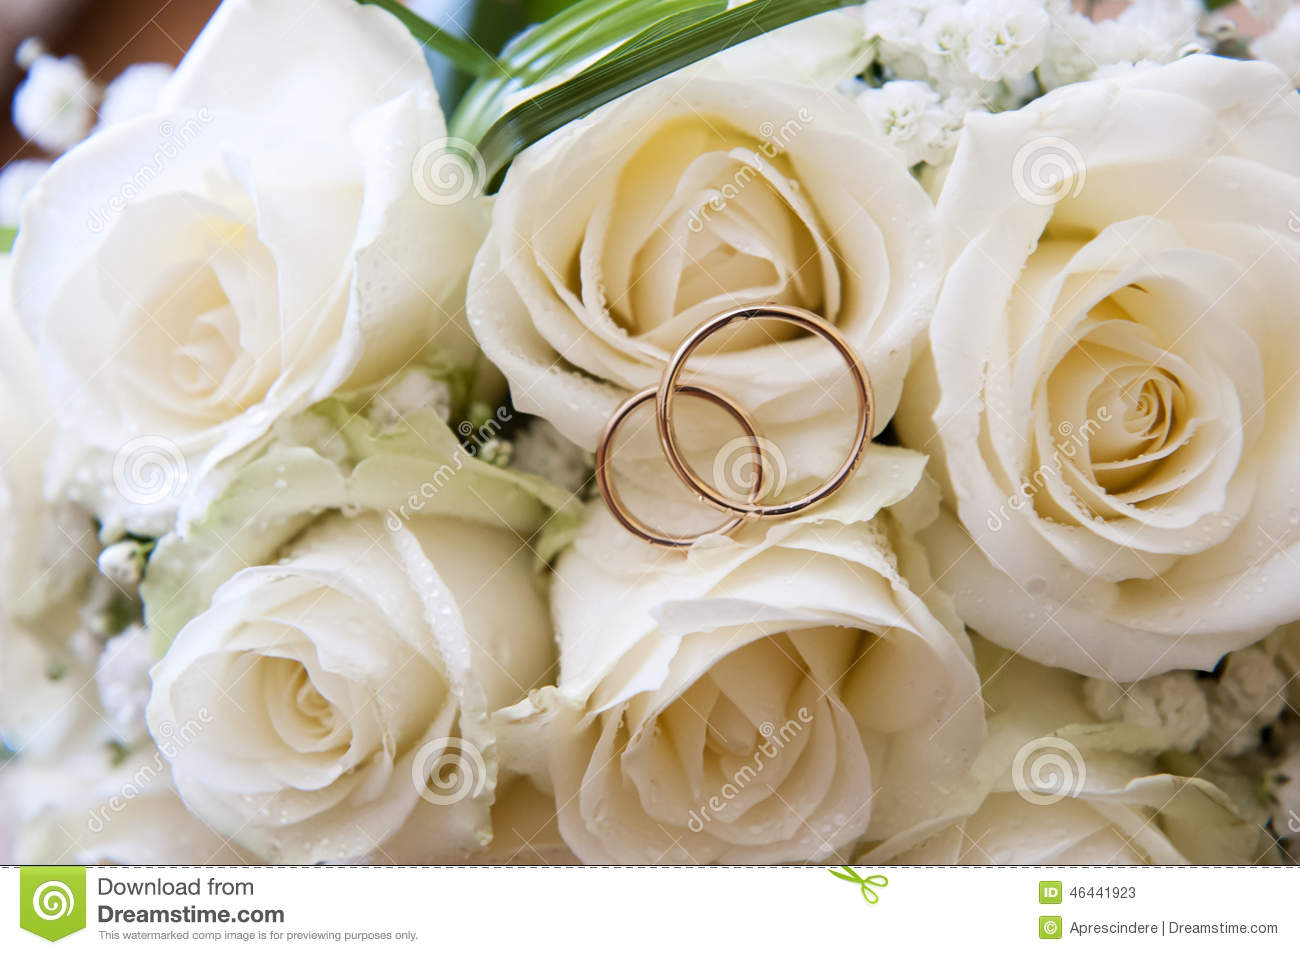 red lays video hd rings stock wedding white roses bouquet footage india and of